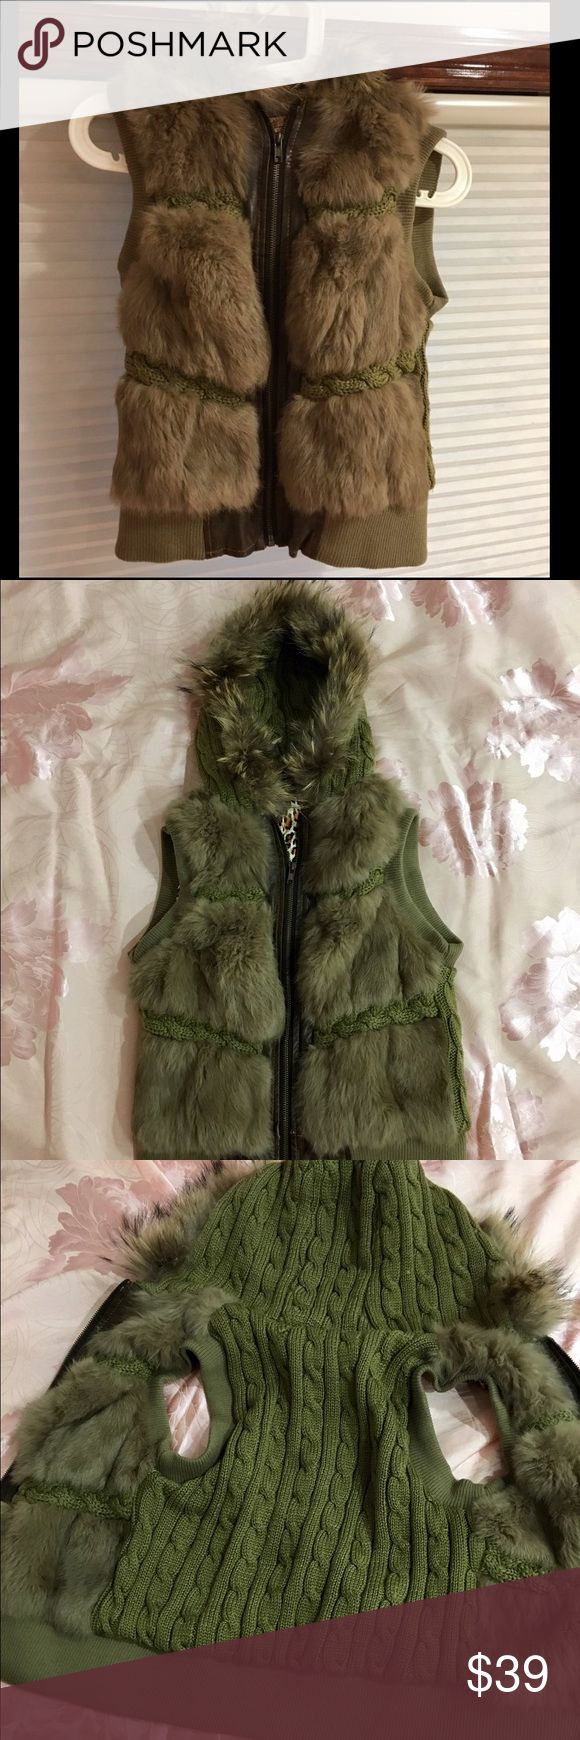 Rabbit Fur Vest Color: Khaki olive green  Material: rabbit hair, Sweater, polyester Size: XS petite fit, XS little cropped fit for non-petite women Korean brand. Worn once. Jackets & Coats Vests